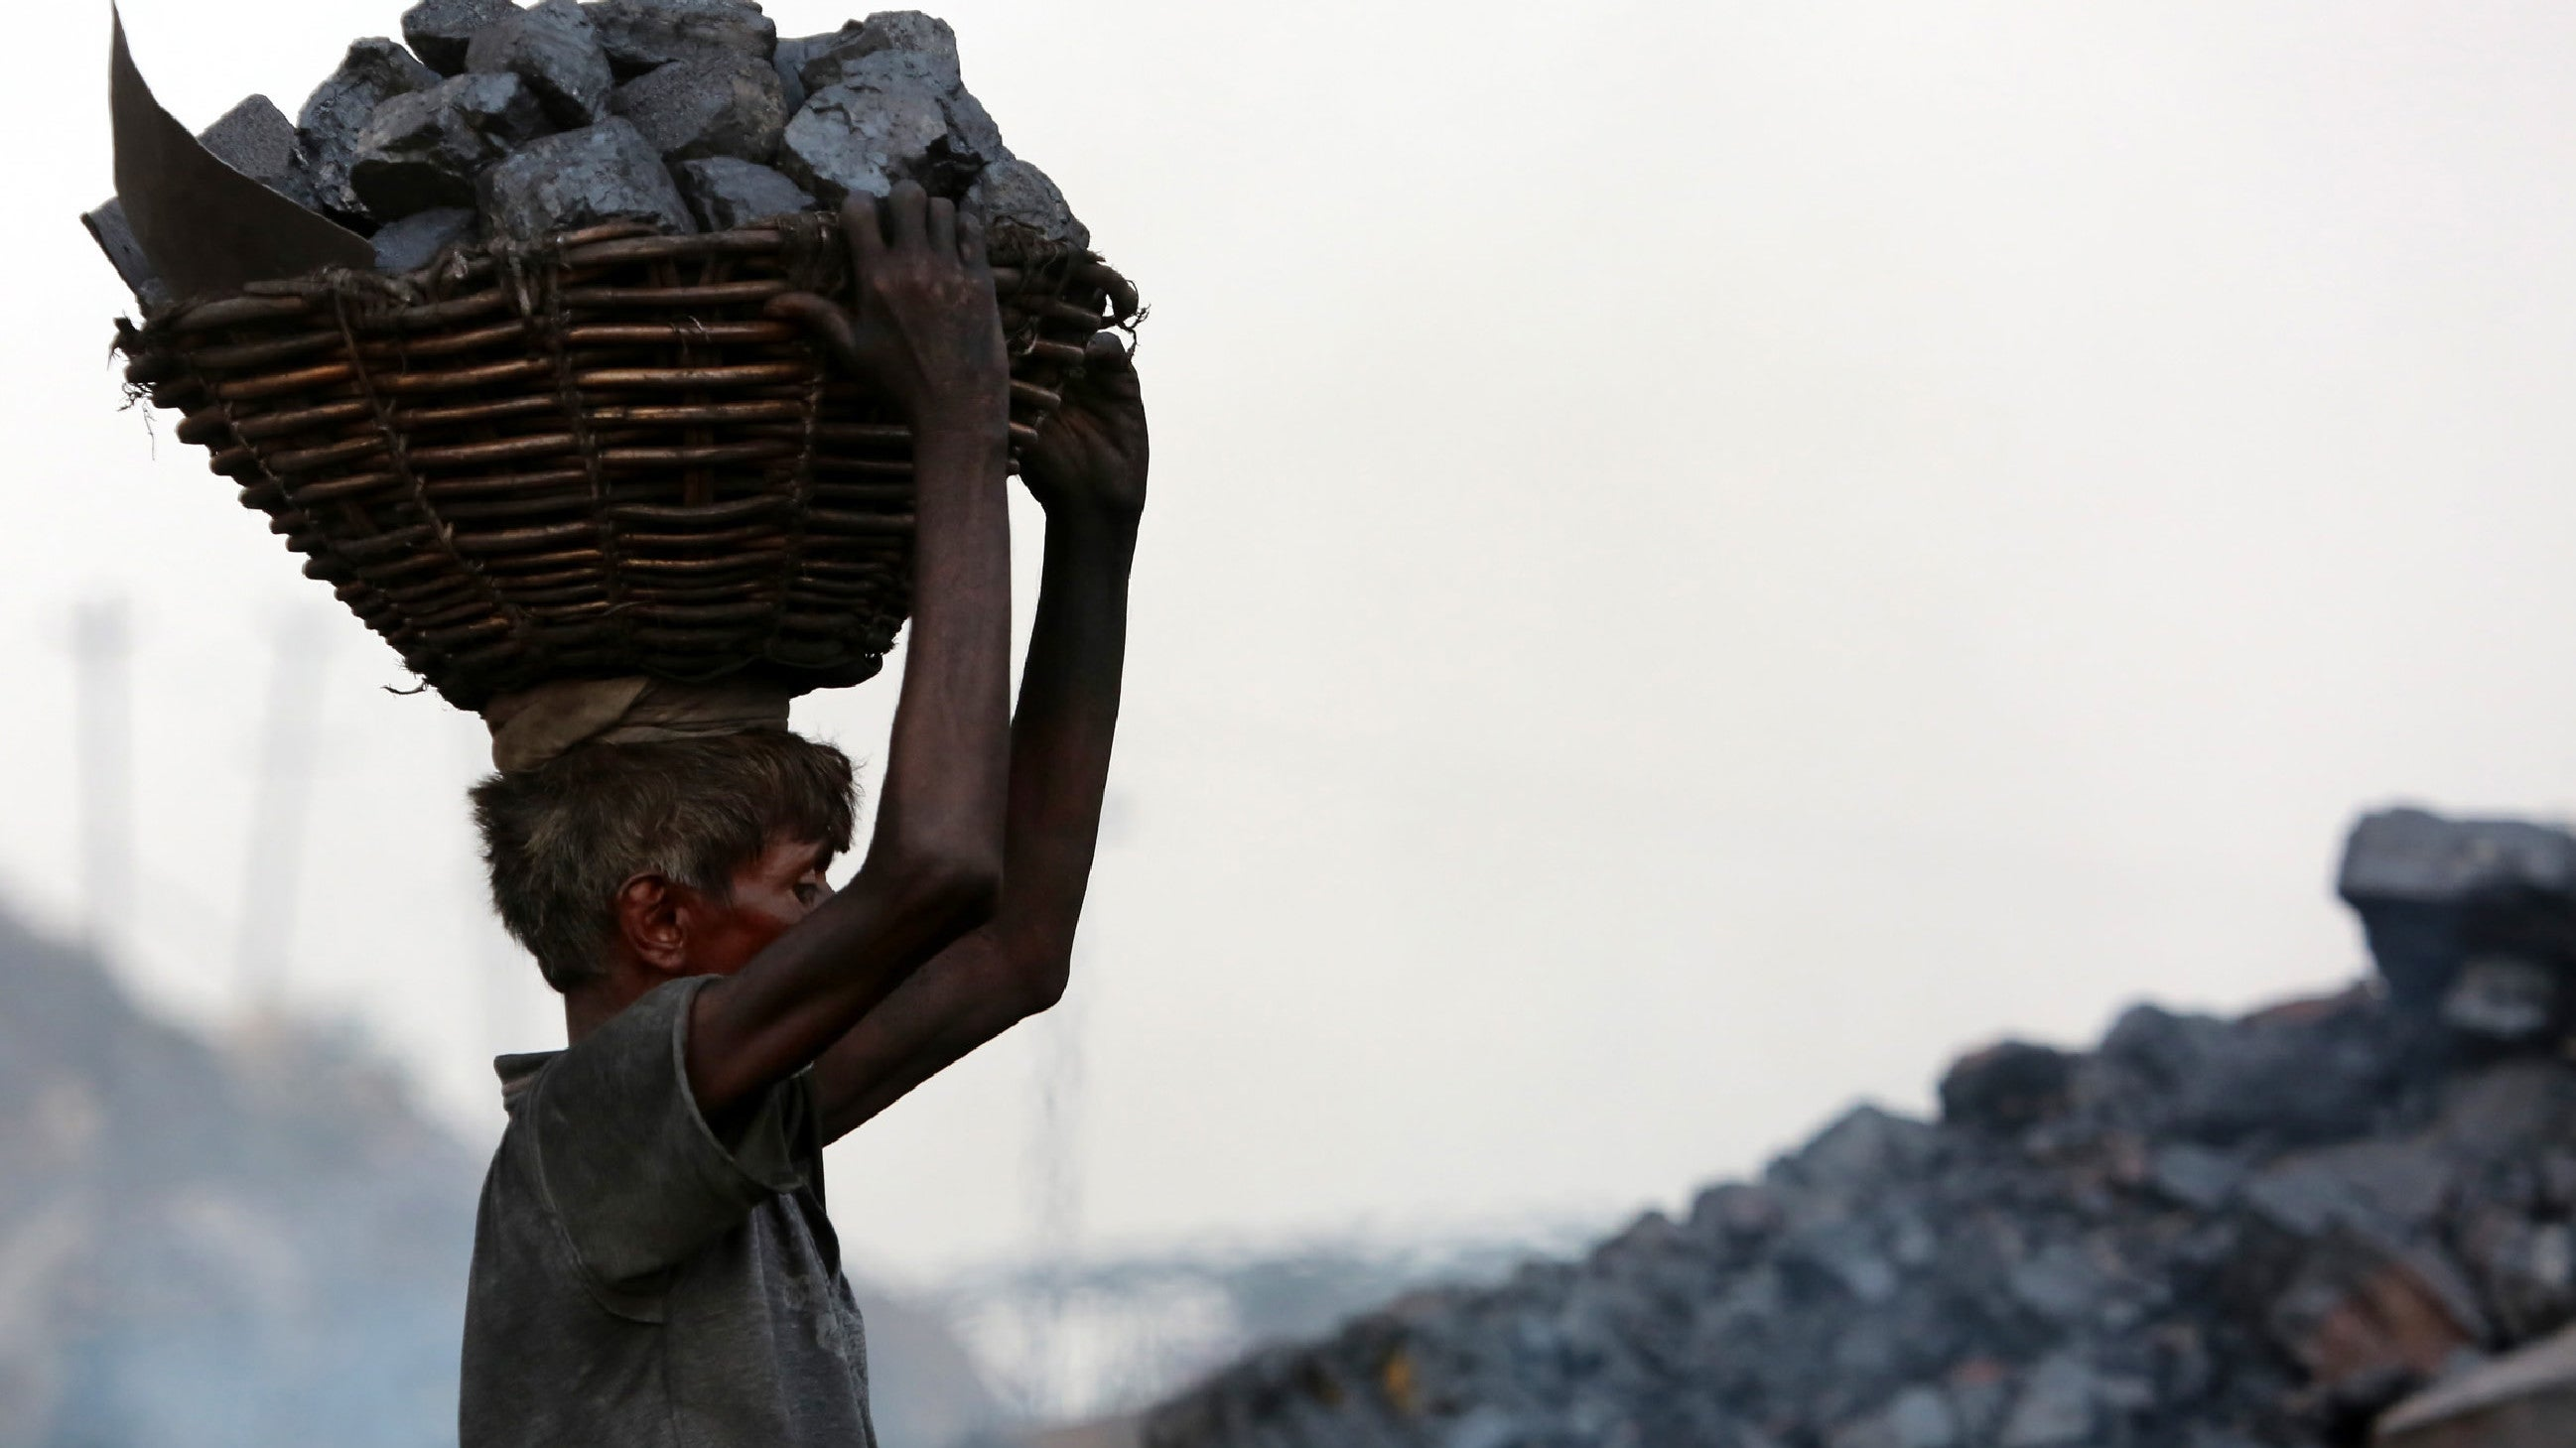 Report: India Prime Minister Proposes Helping The Coal Industry Survive Amid Climate Crisis